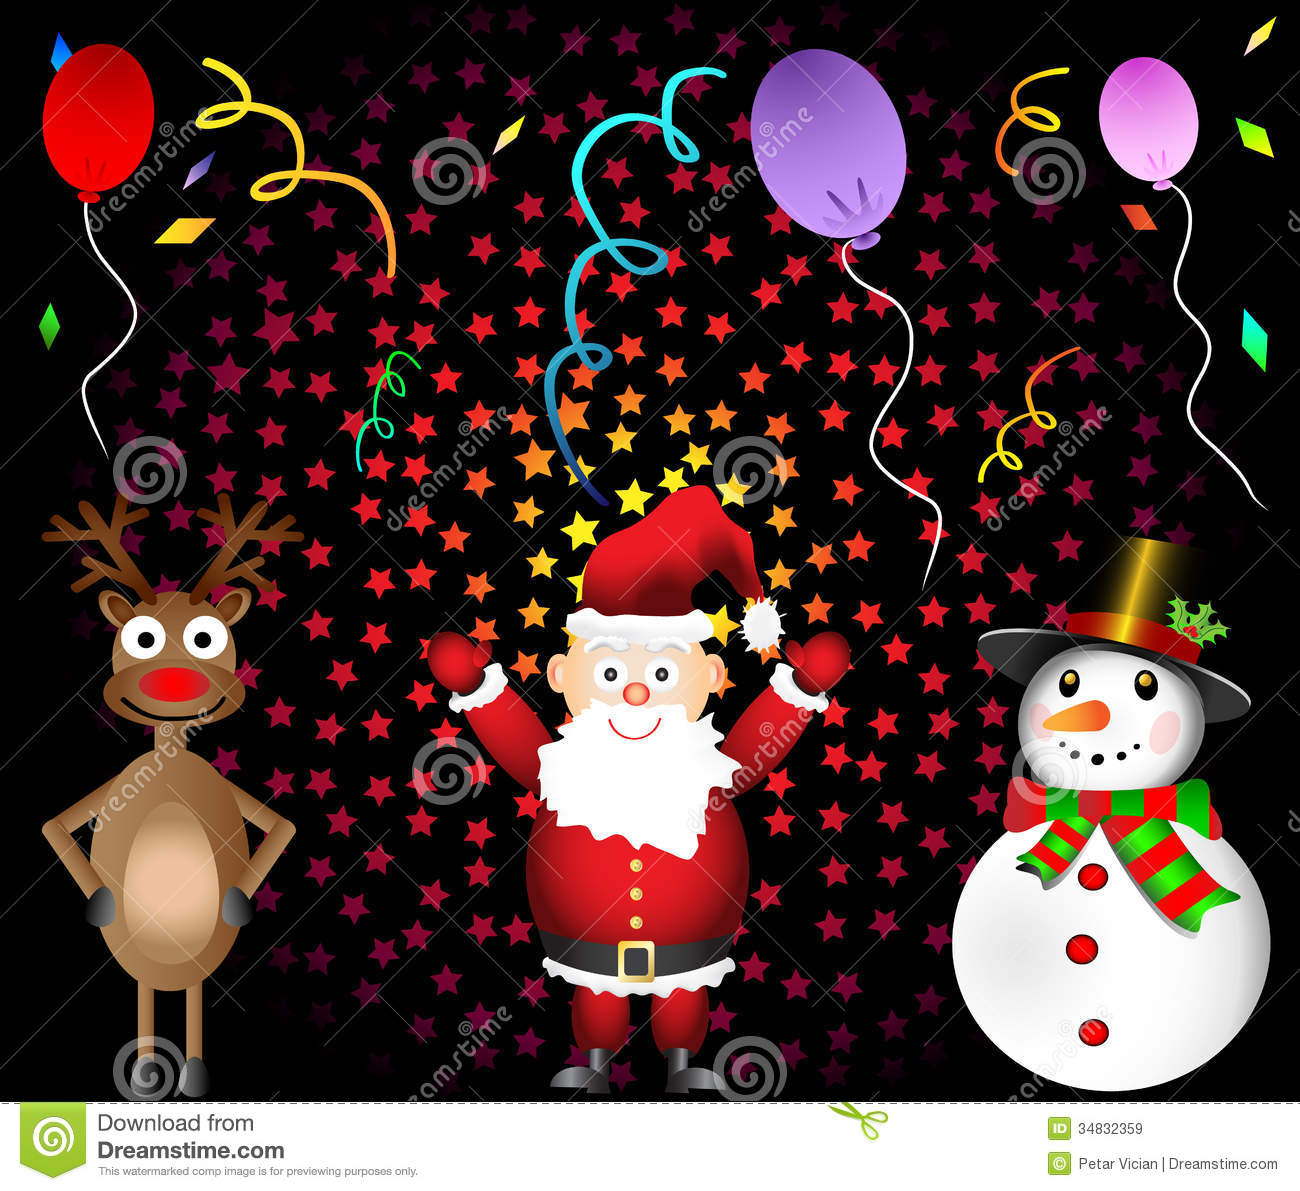 Christmas Party Santa Claus Red Nosed Reindeer And Royalty Free Stock ...